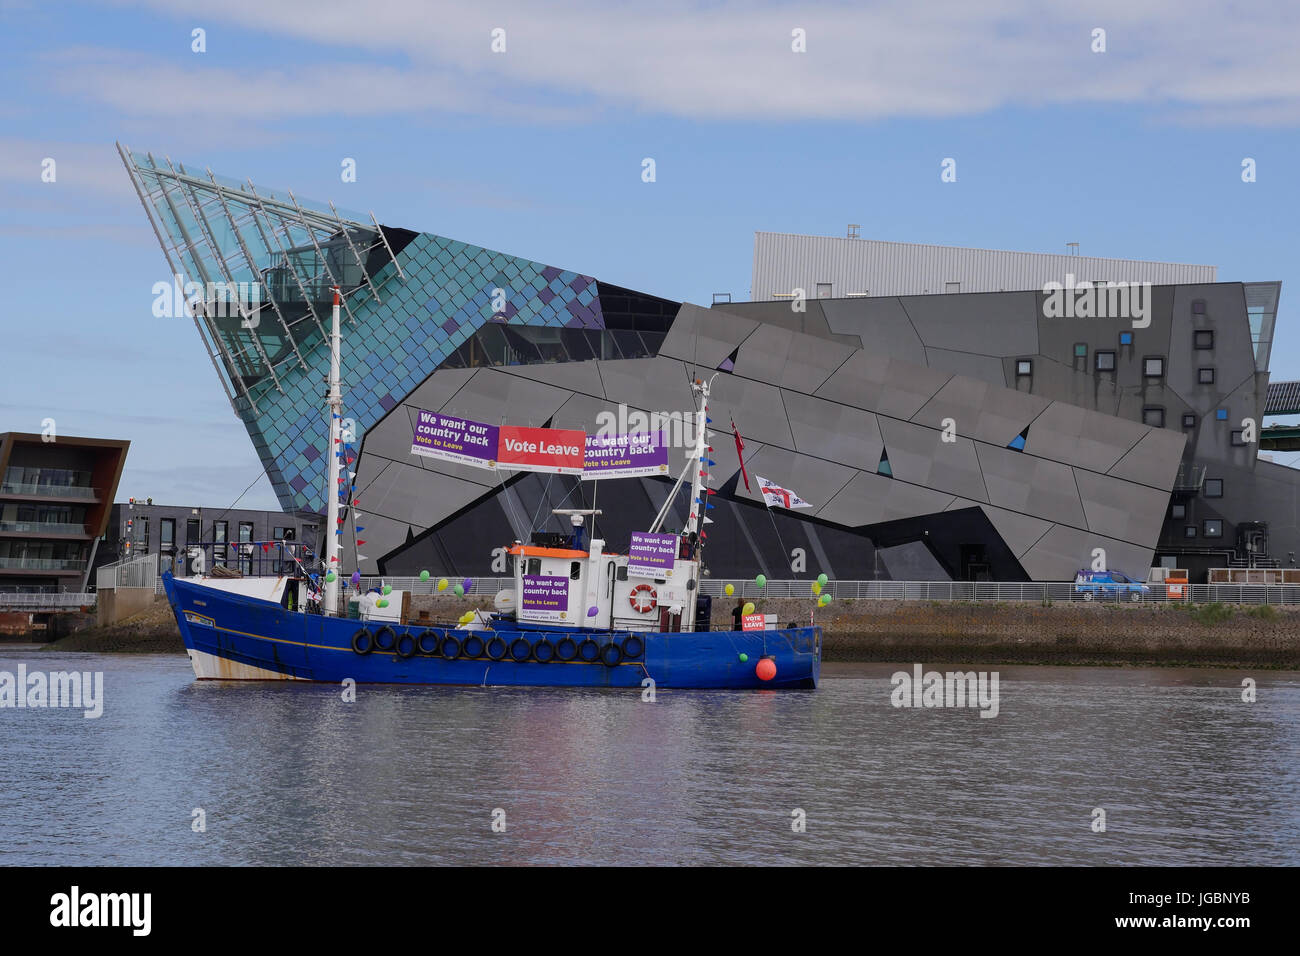 A fishing boat supporting leave the European Union referendum campaign. Part of the protest flotilla in The river - Stock Image